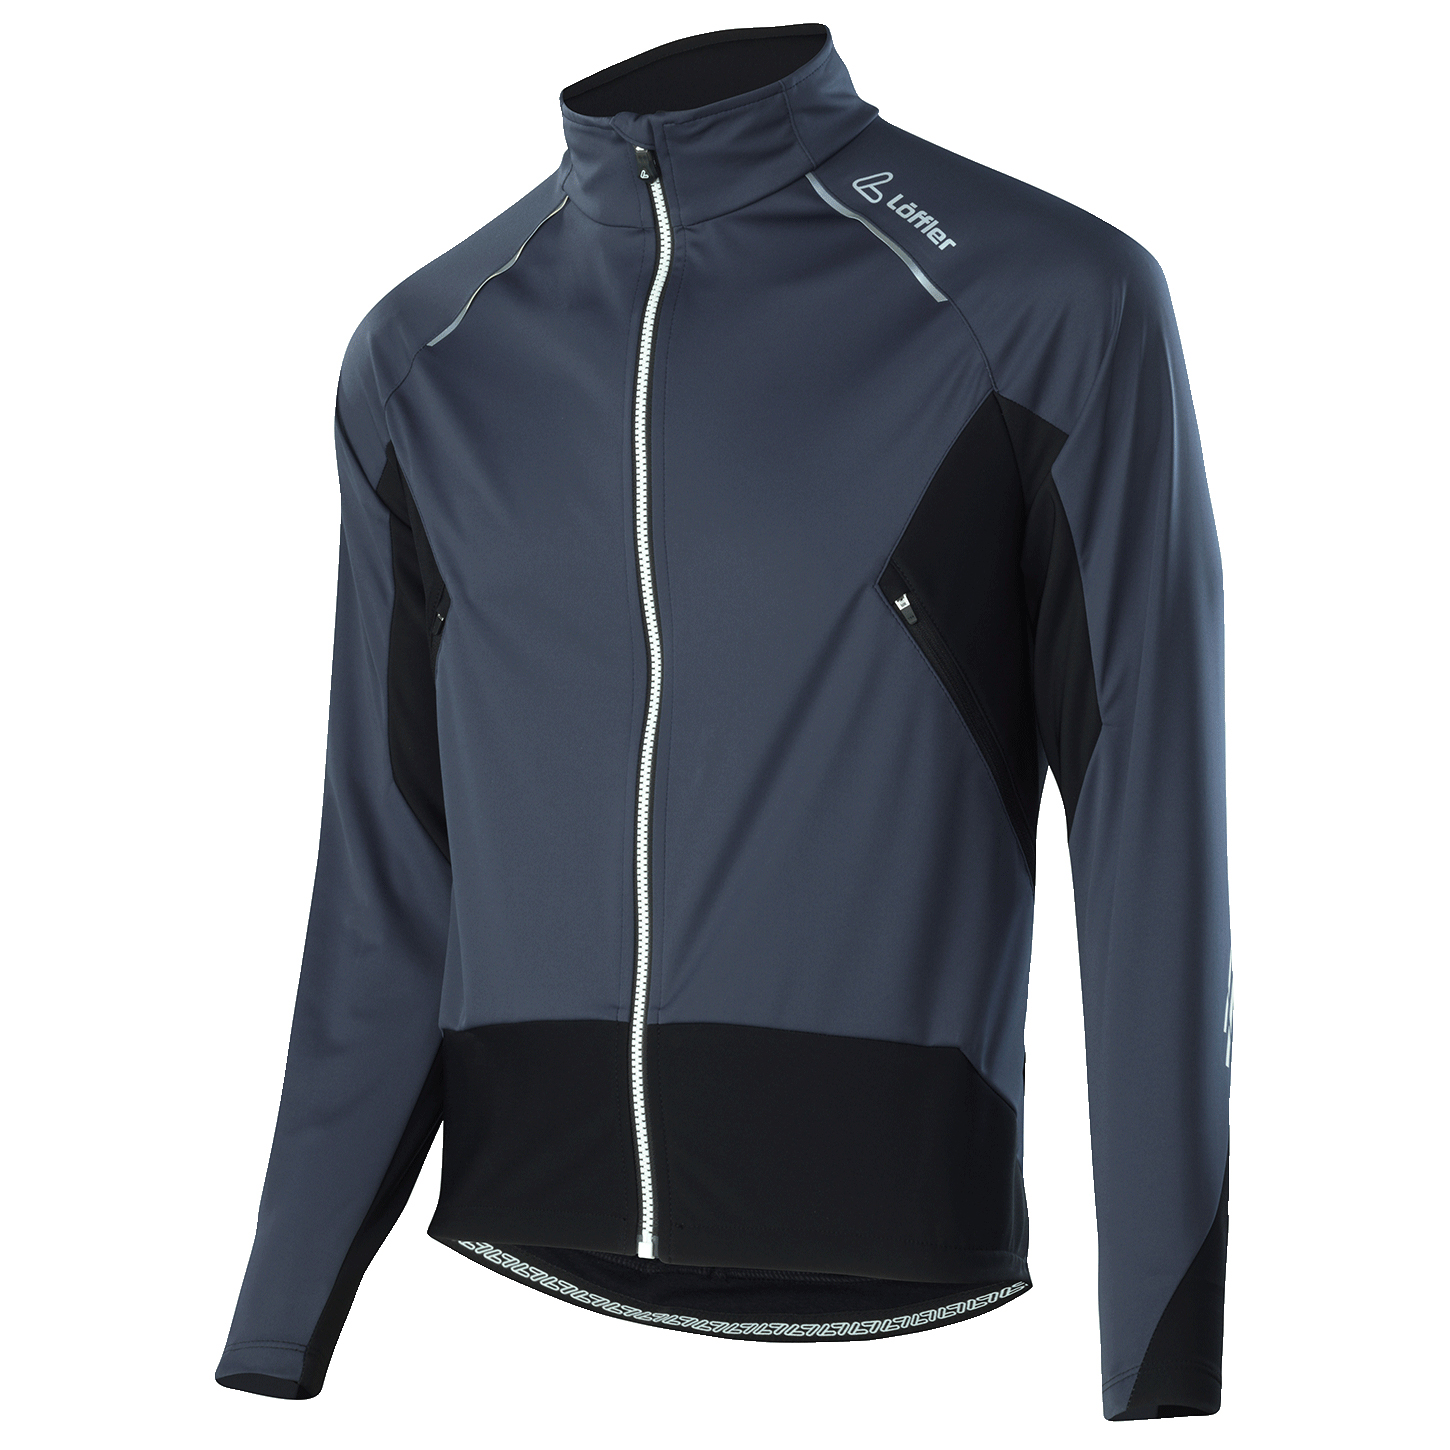 Softshell Wind Stoper Road Bike Cycling Jacket Top Thermal Full Saleeve